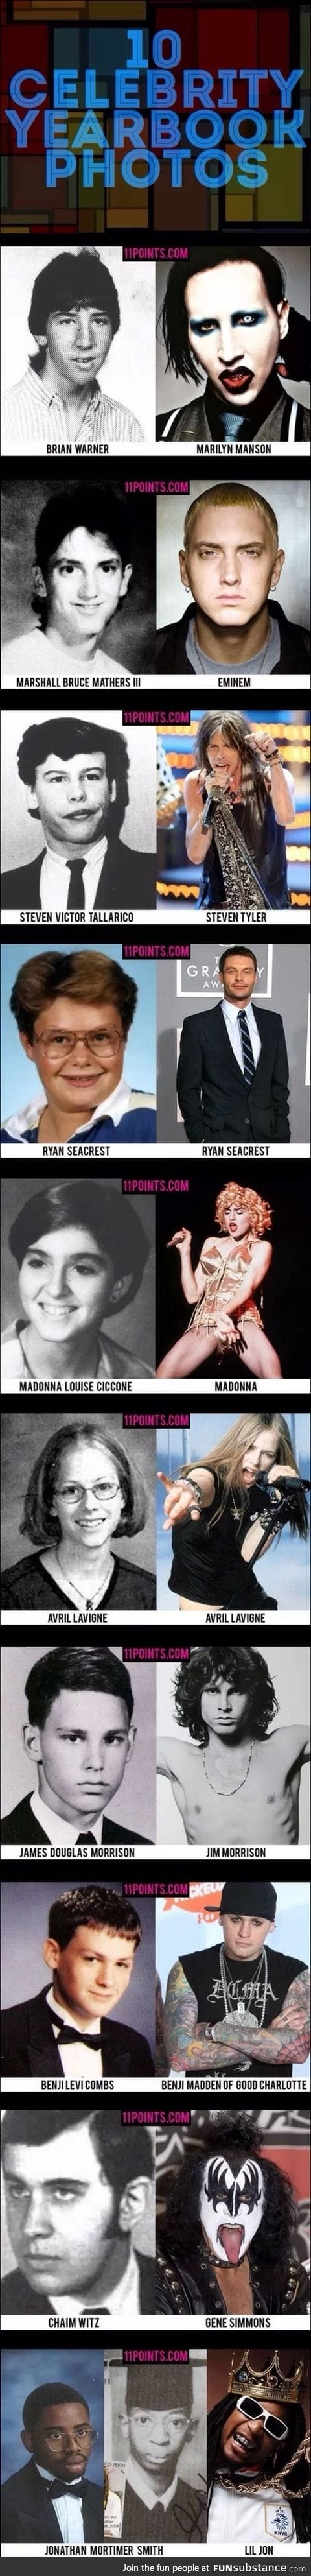 Celeb Yearbook Photos Then and Now